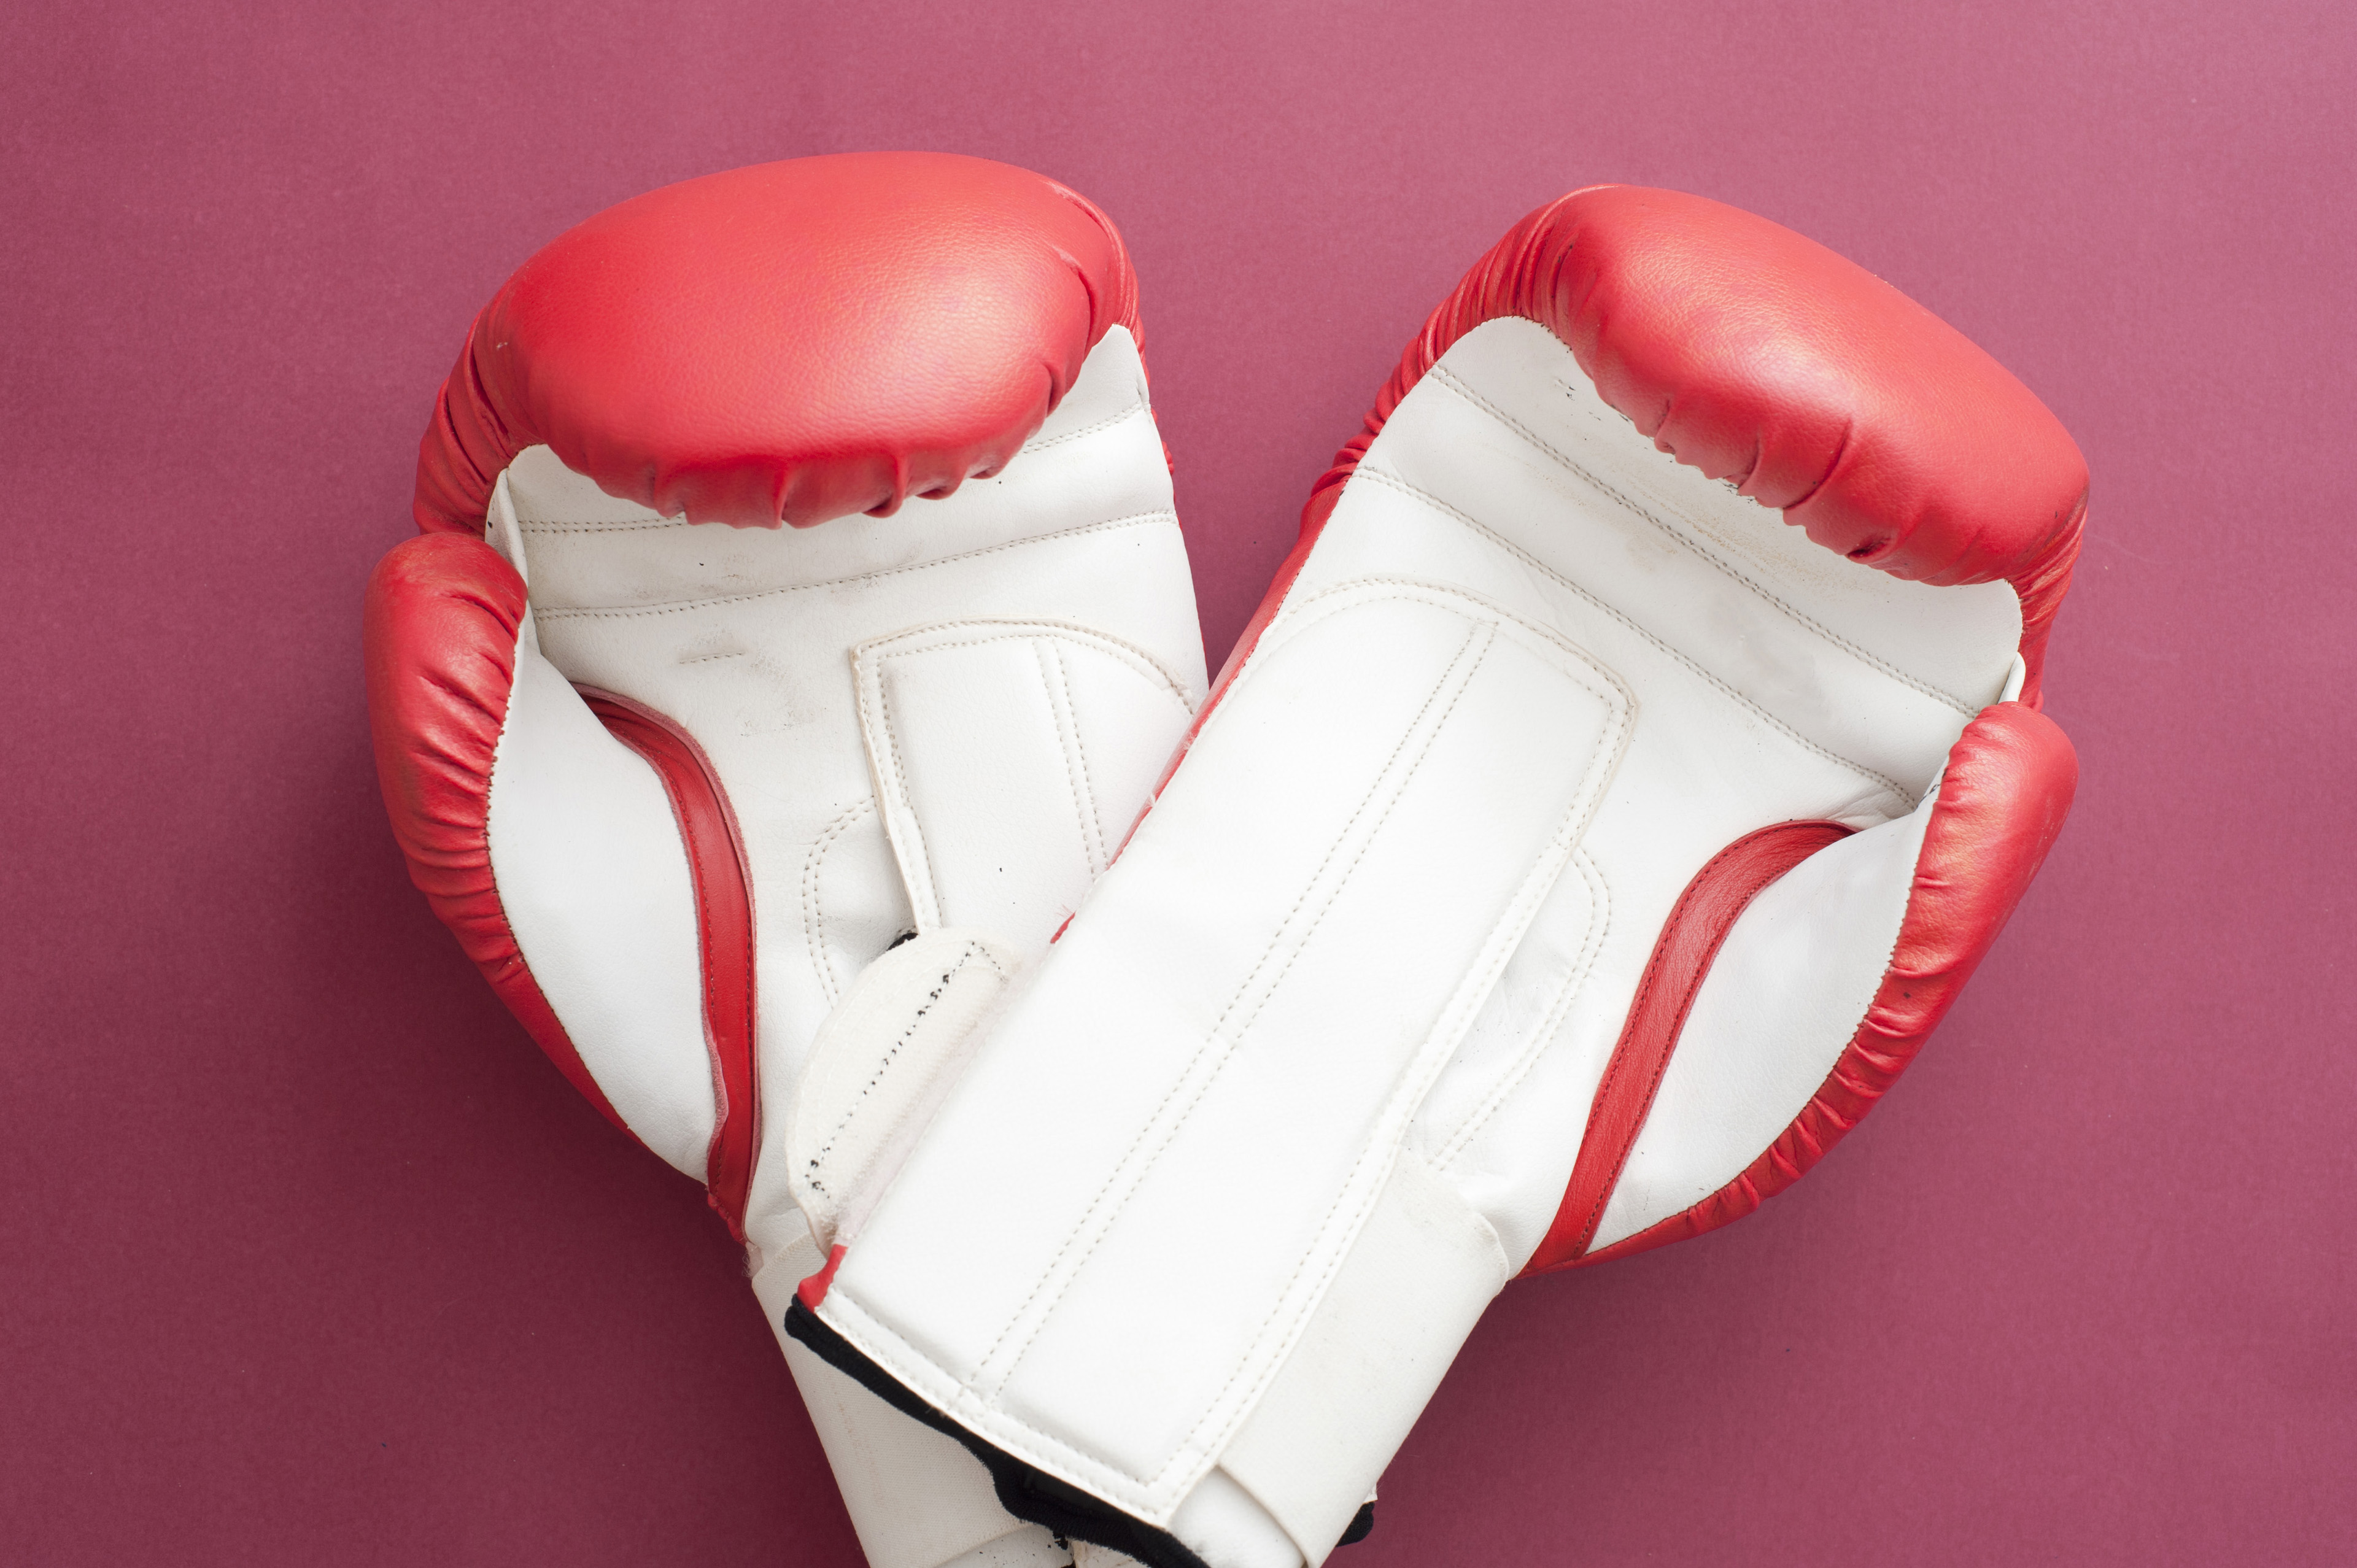 Close up Pair of Red and White Boxing Gloves for Workout Isolated on a Fuchsia Background